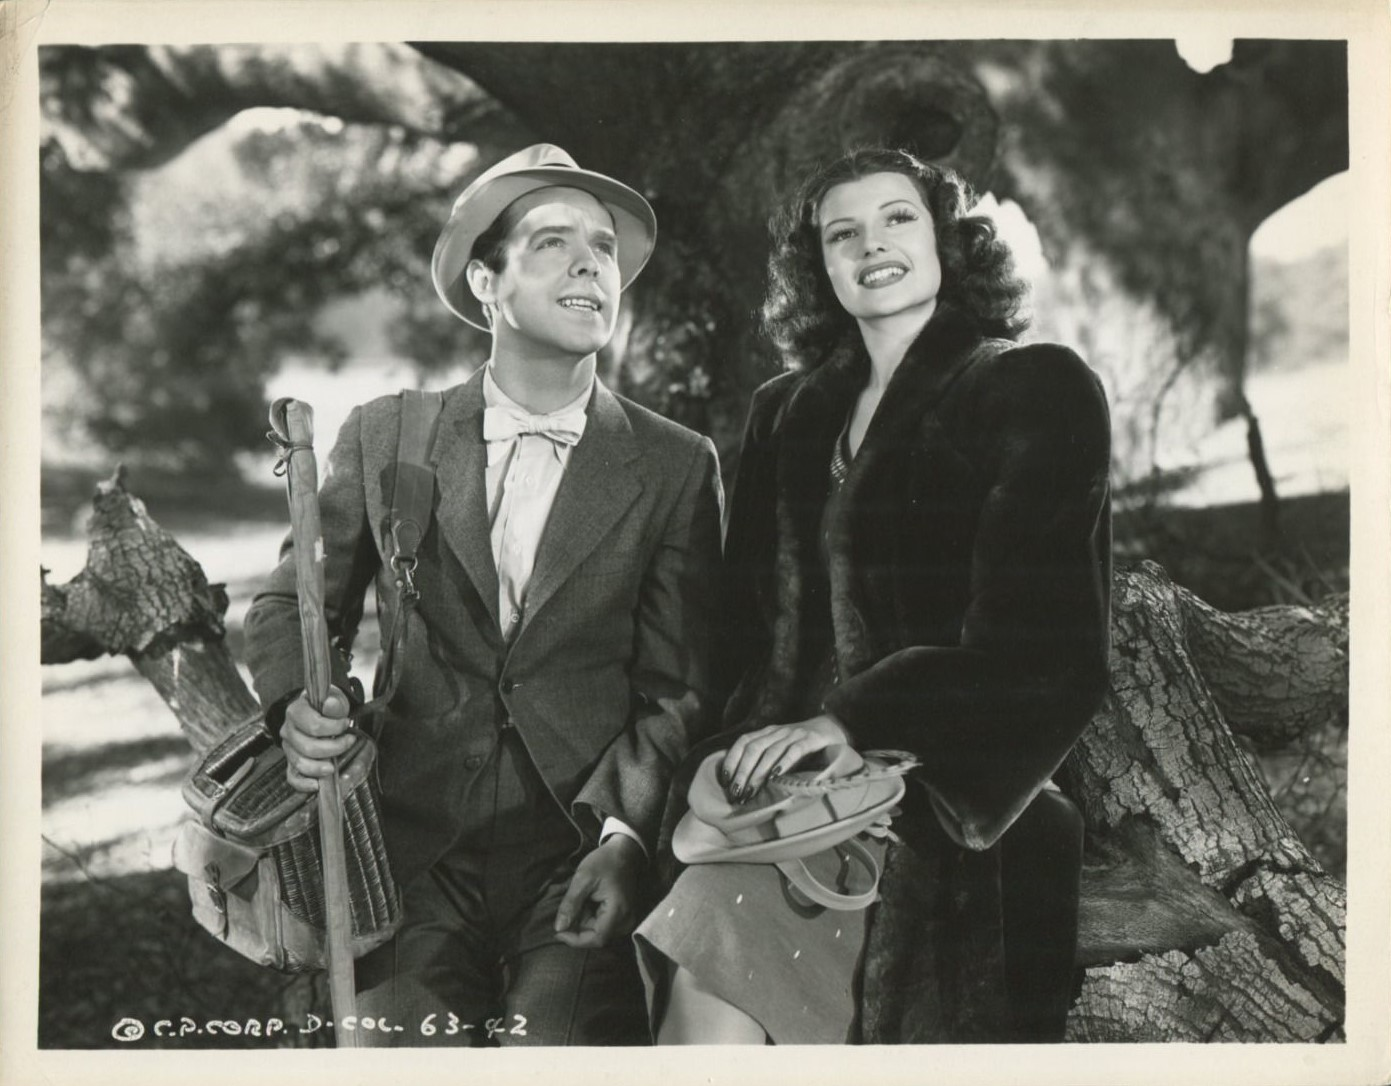 Rita Hayworth and Arthur Lake in Blondie on a Budget (1940)